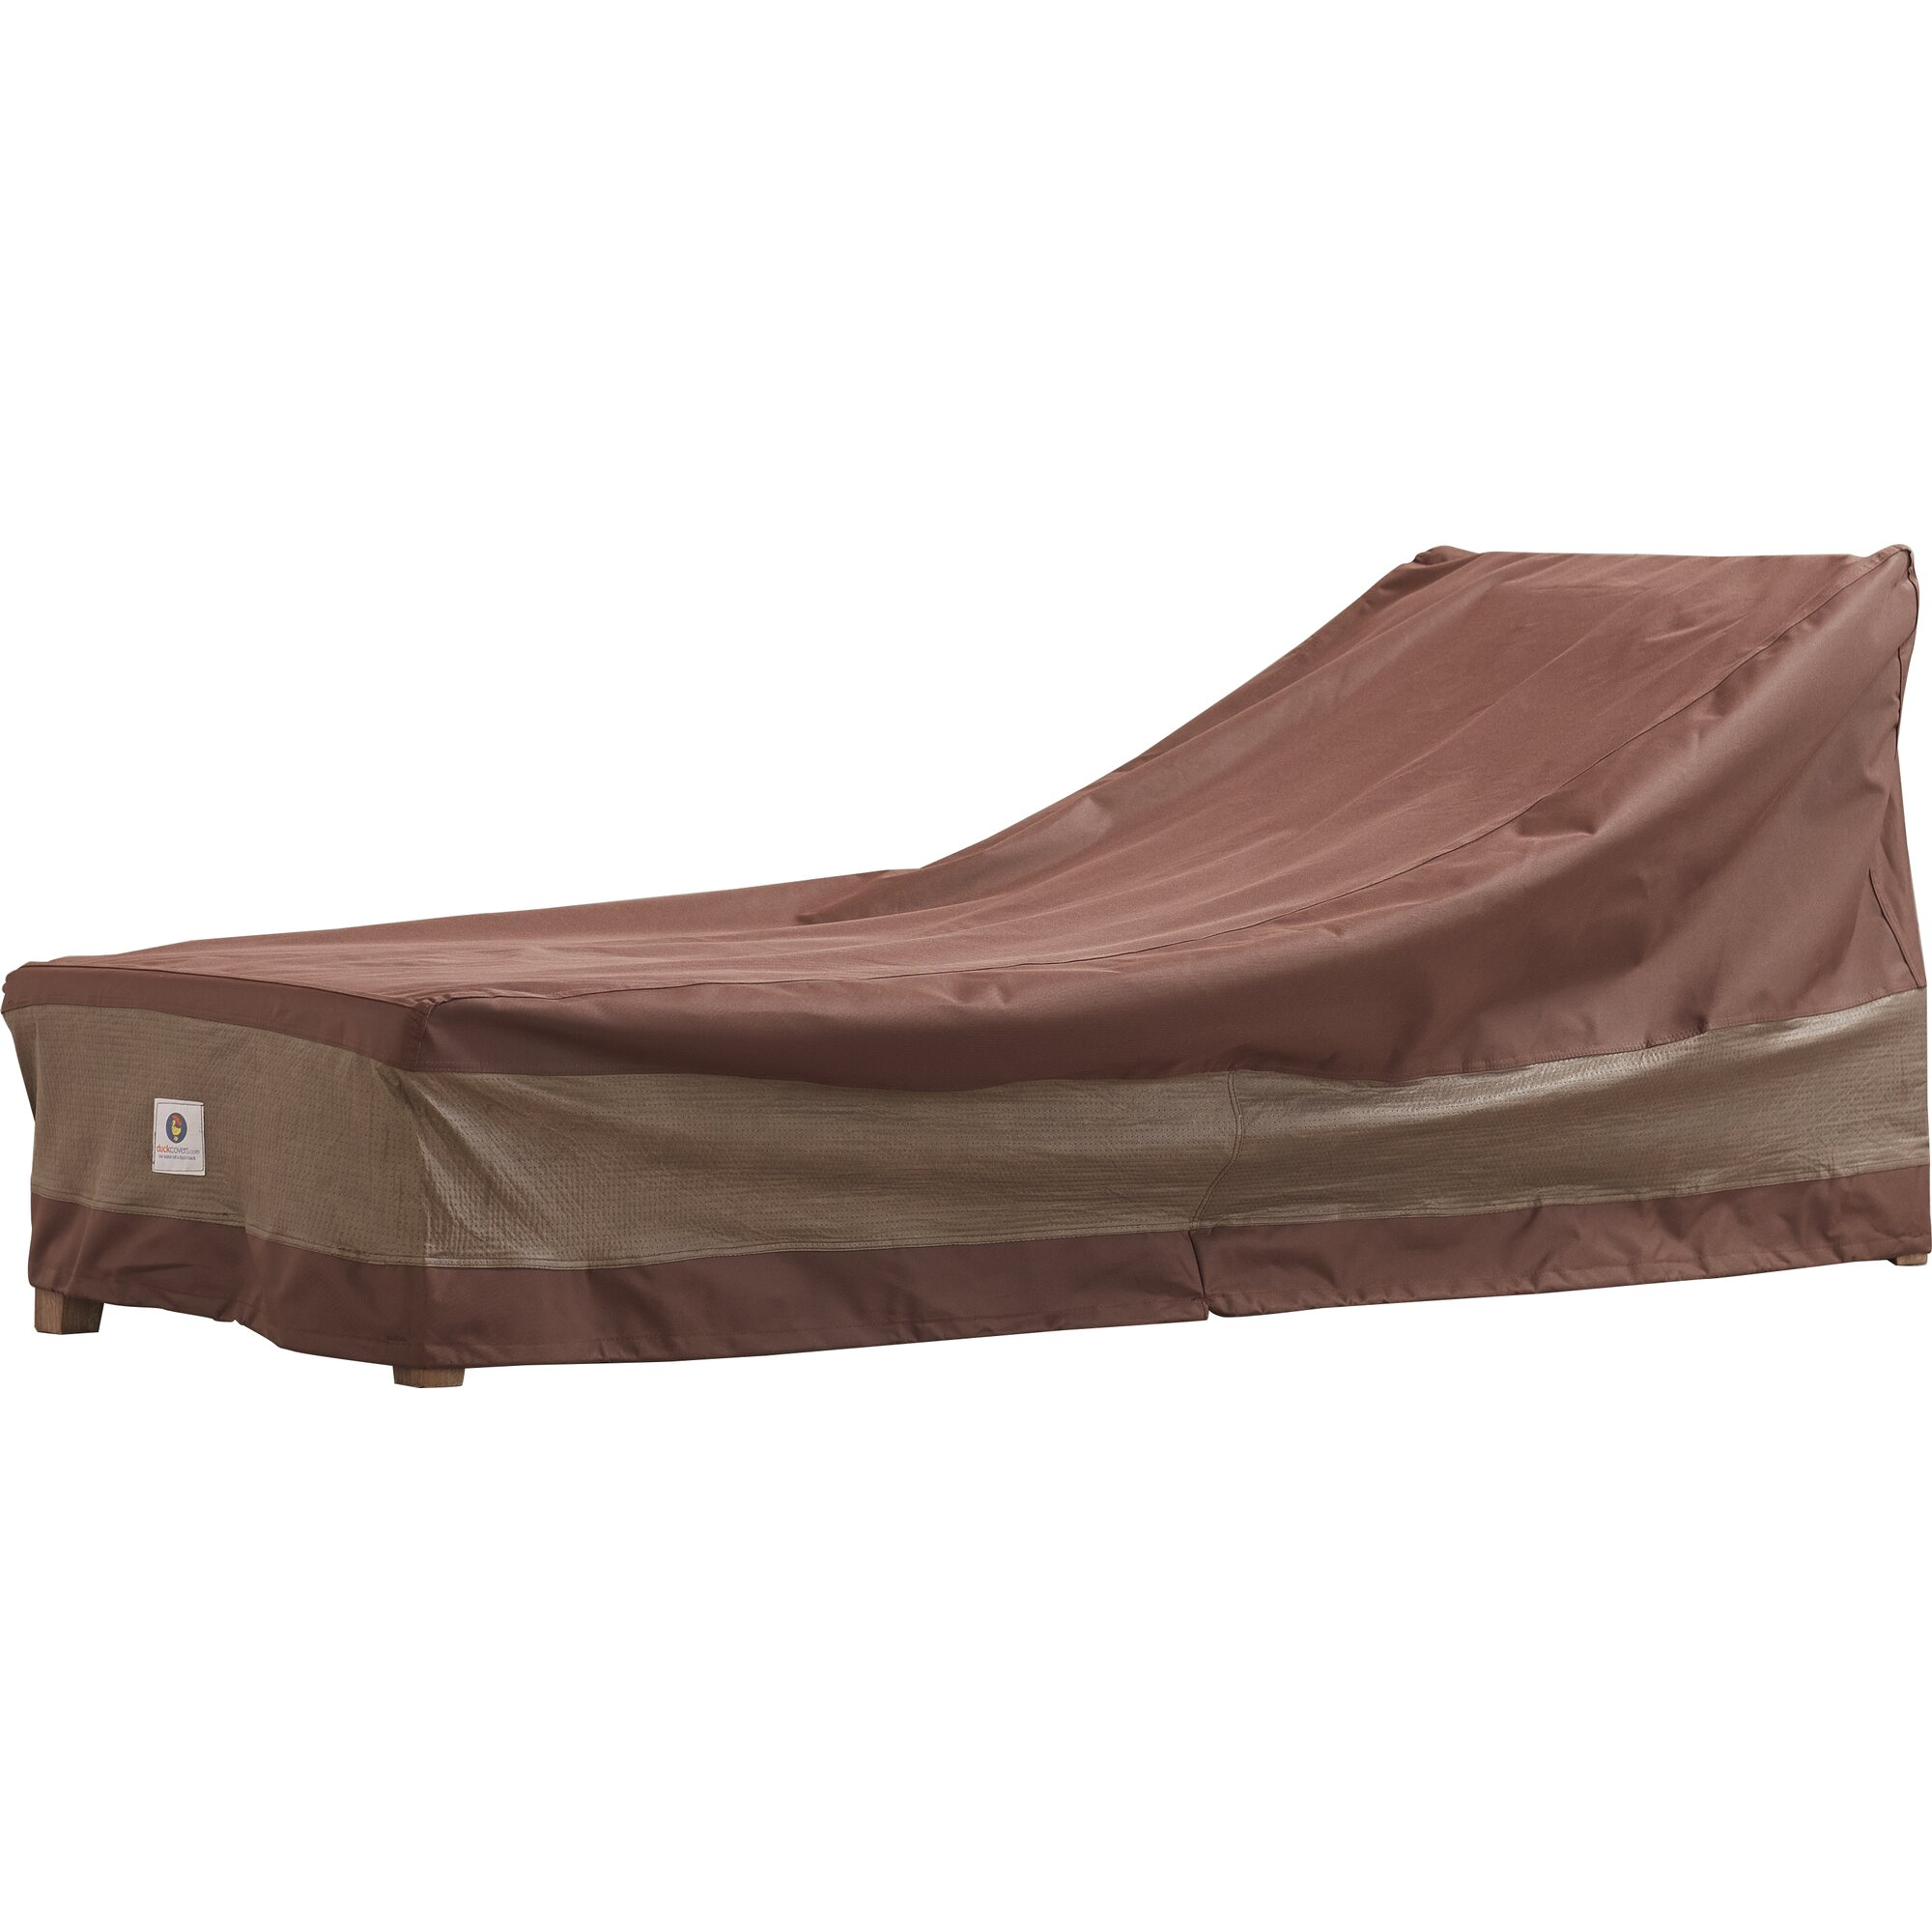 Symple Stuff Ultimate Patio Chaise Lounge Cover & Reviews